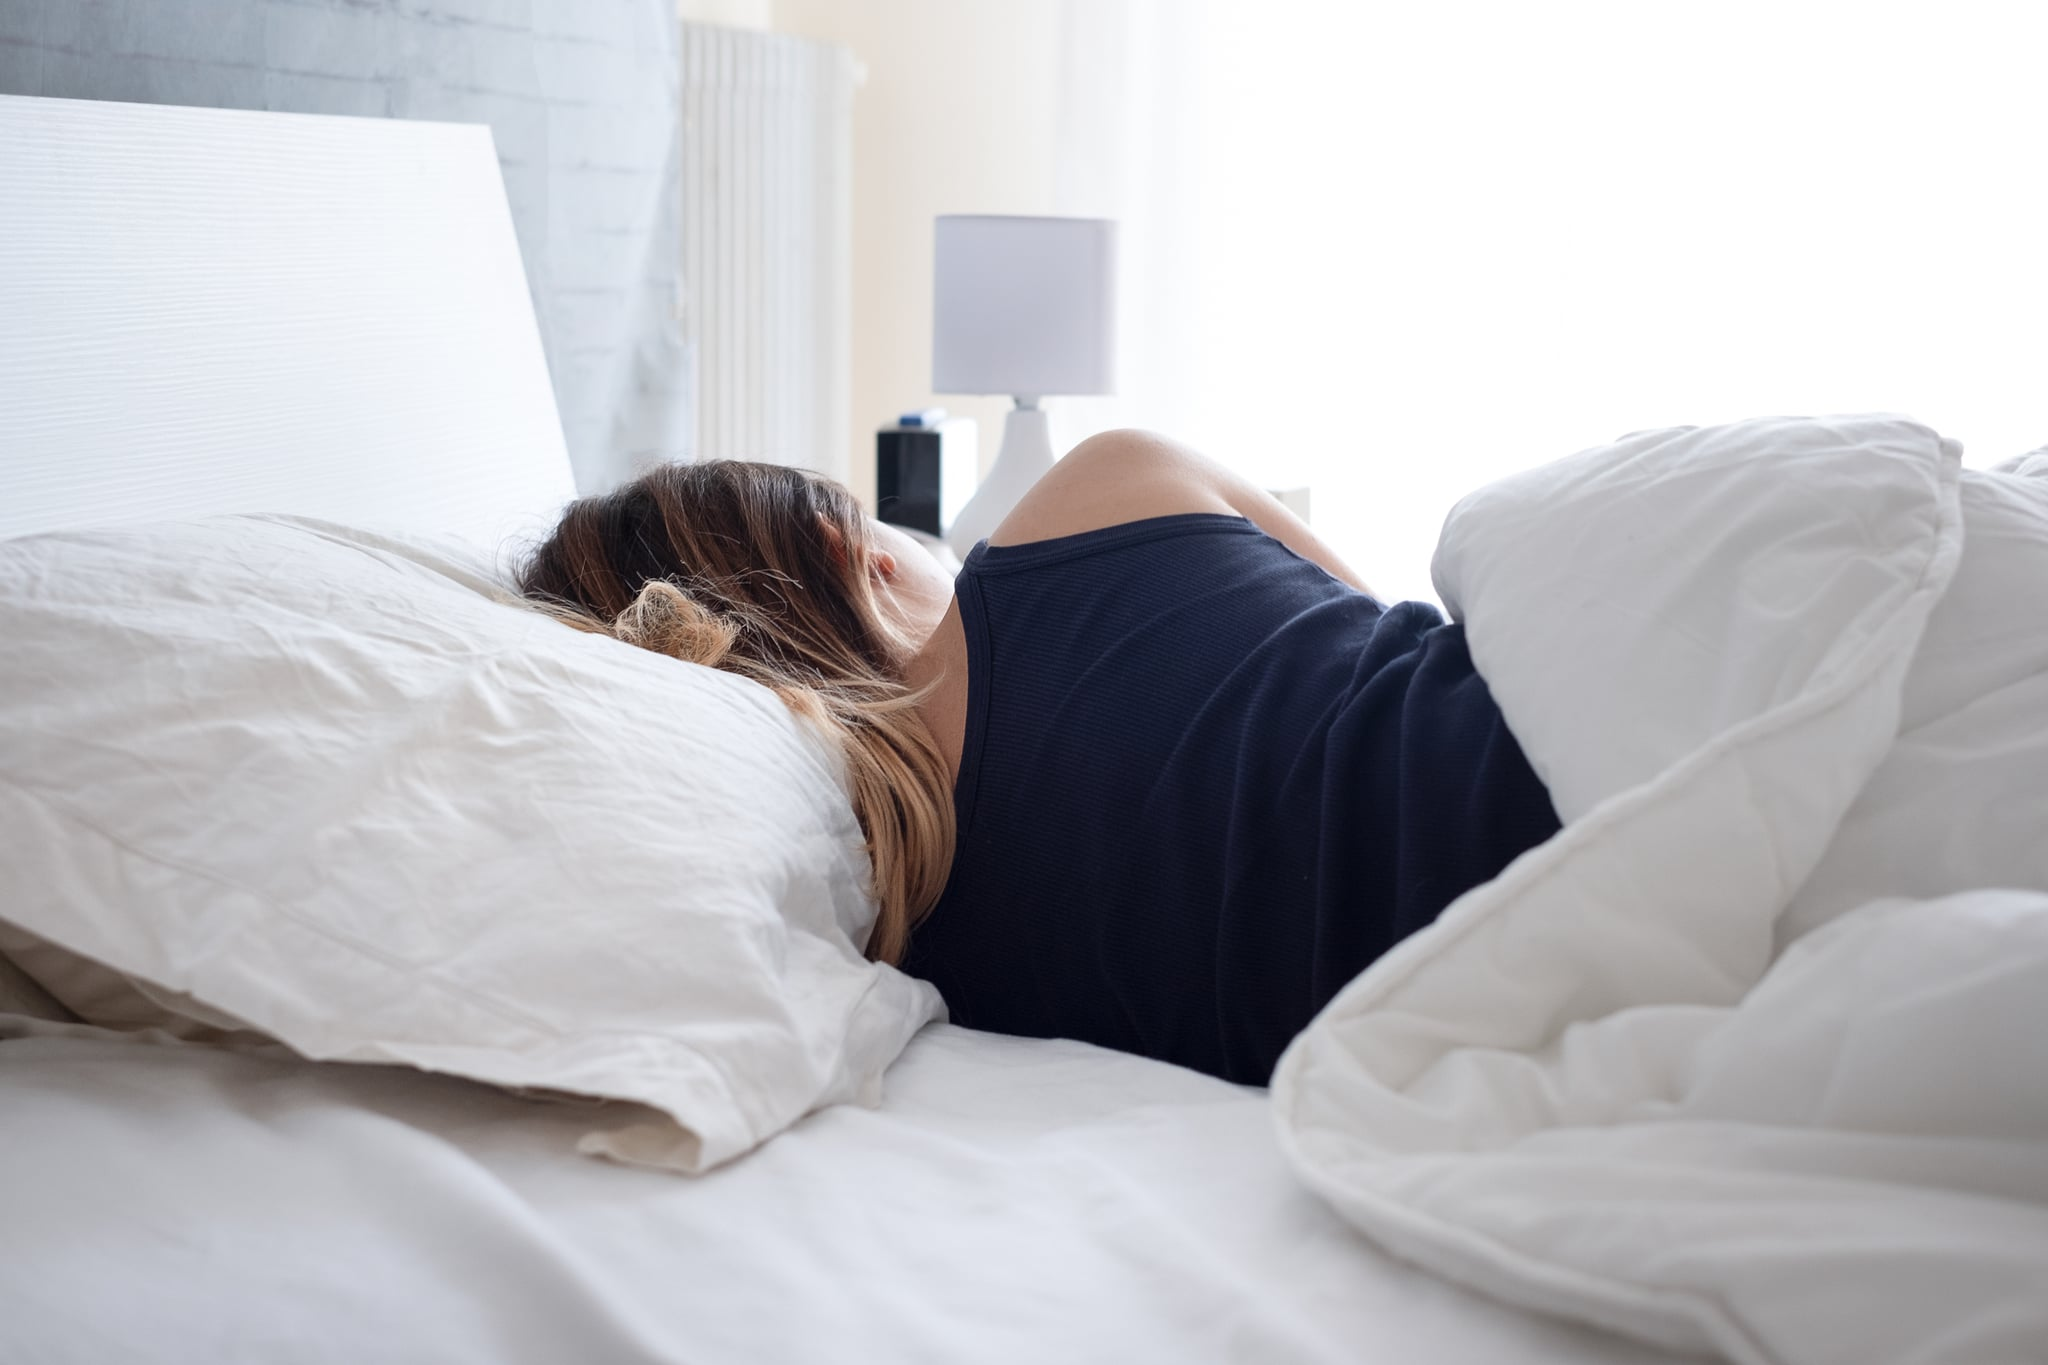 Back view of woman sleeping comfortable in bed